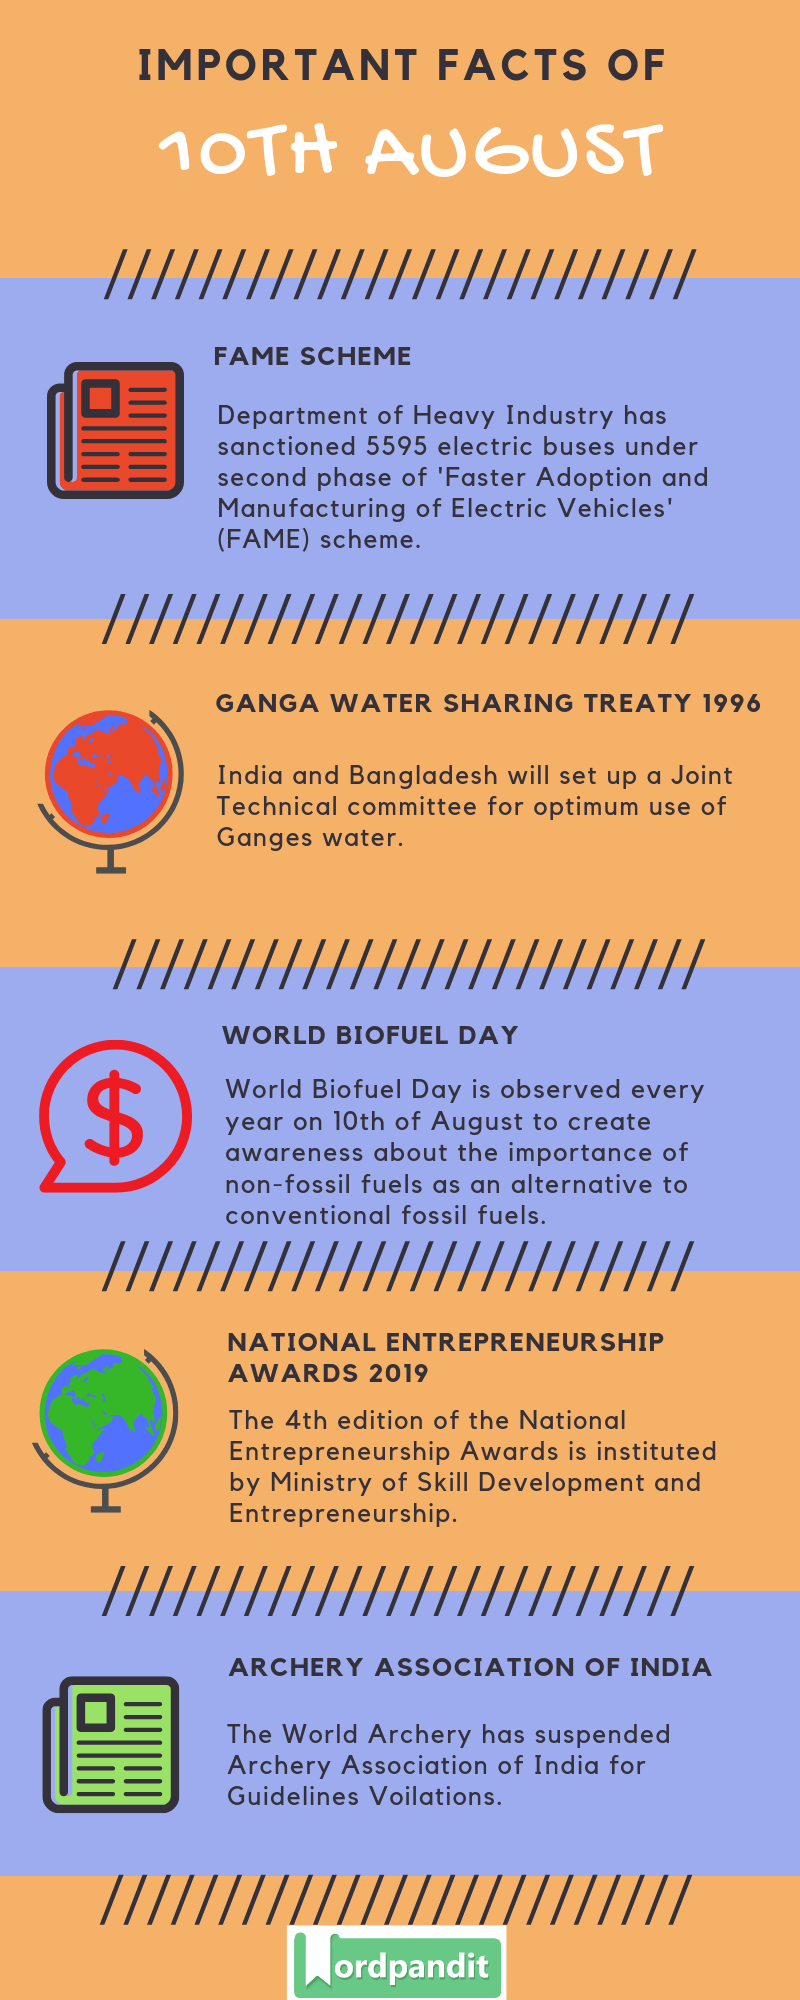 Daily Current Affairs 10 August 2019 Current Affairs Quiz 10 August 2019 Current Affairs Infographic